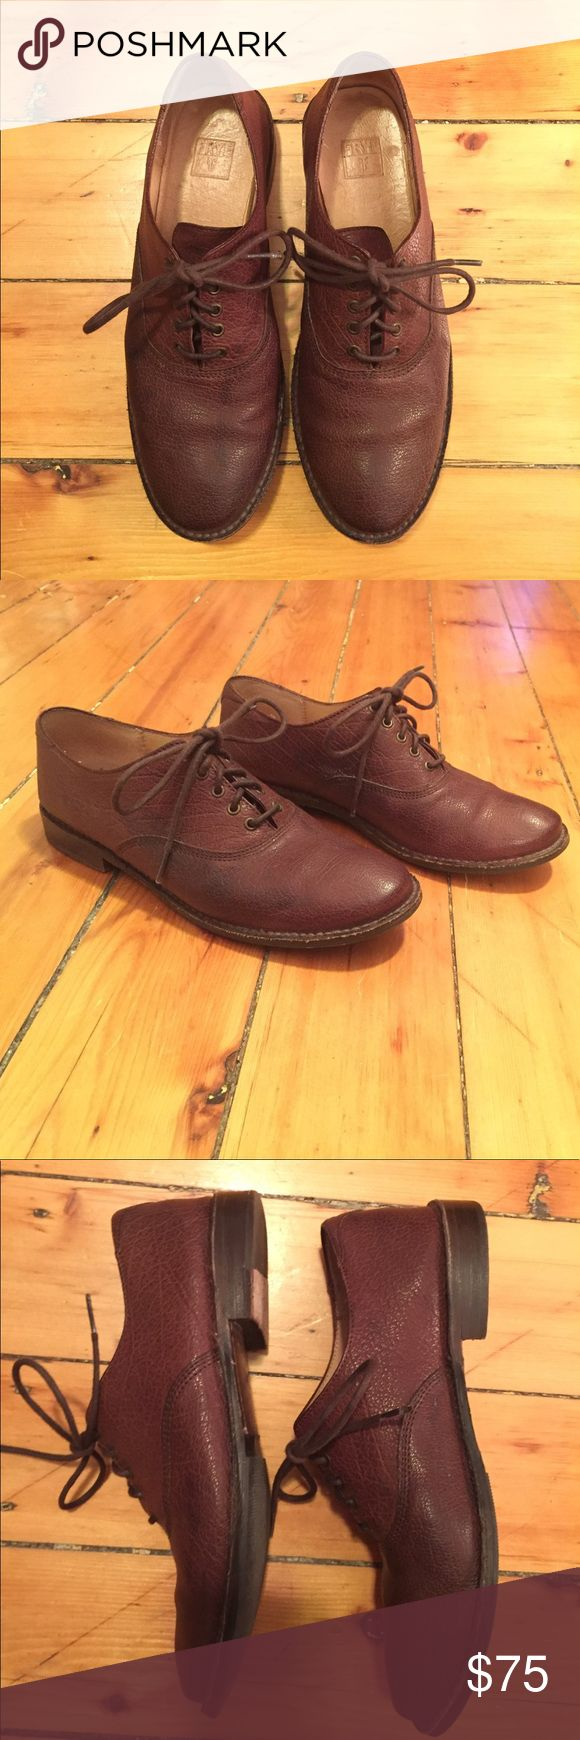 Frye Paige Lace Up Oxfords. Dark Brown. Classic leather lace up oxfords. Wear with your favorite jeans, a summery skirt, or business casual. Very good condition. Frye Shoes Flats & Loafers